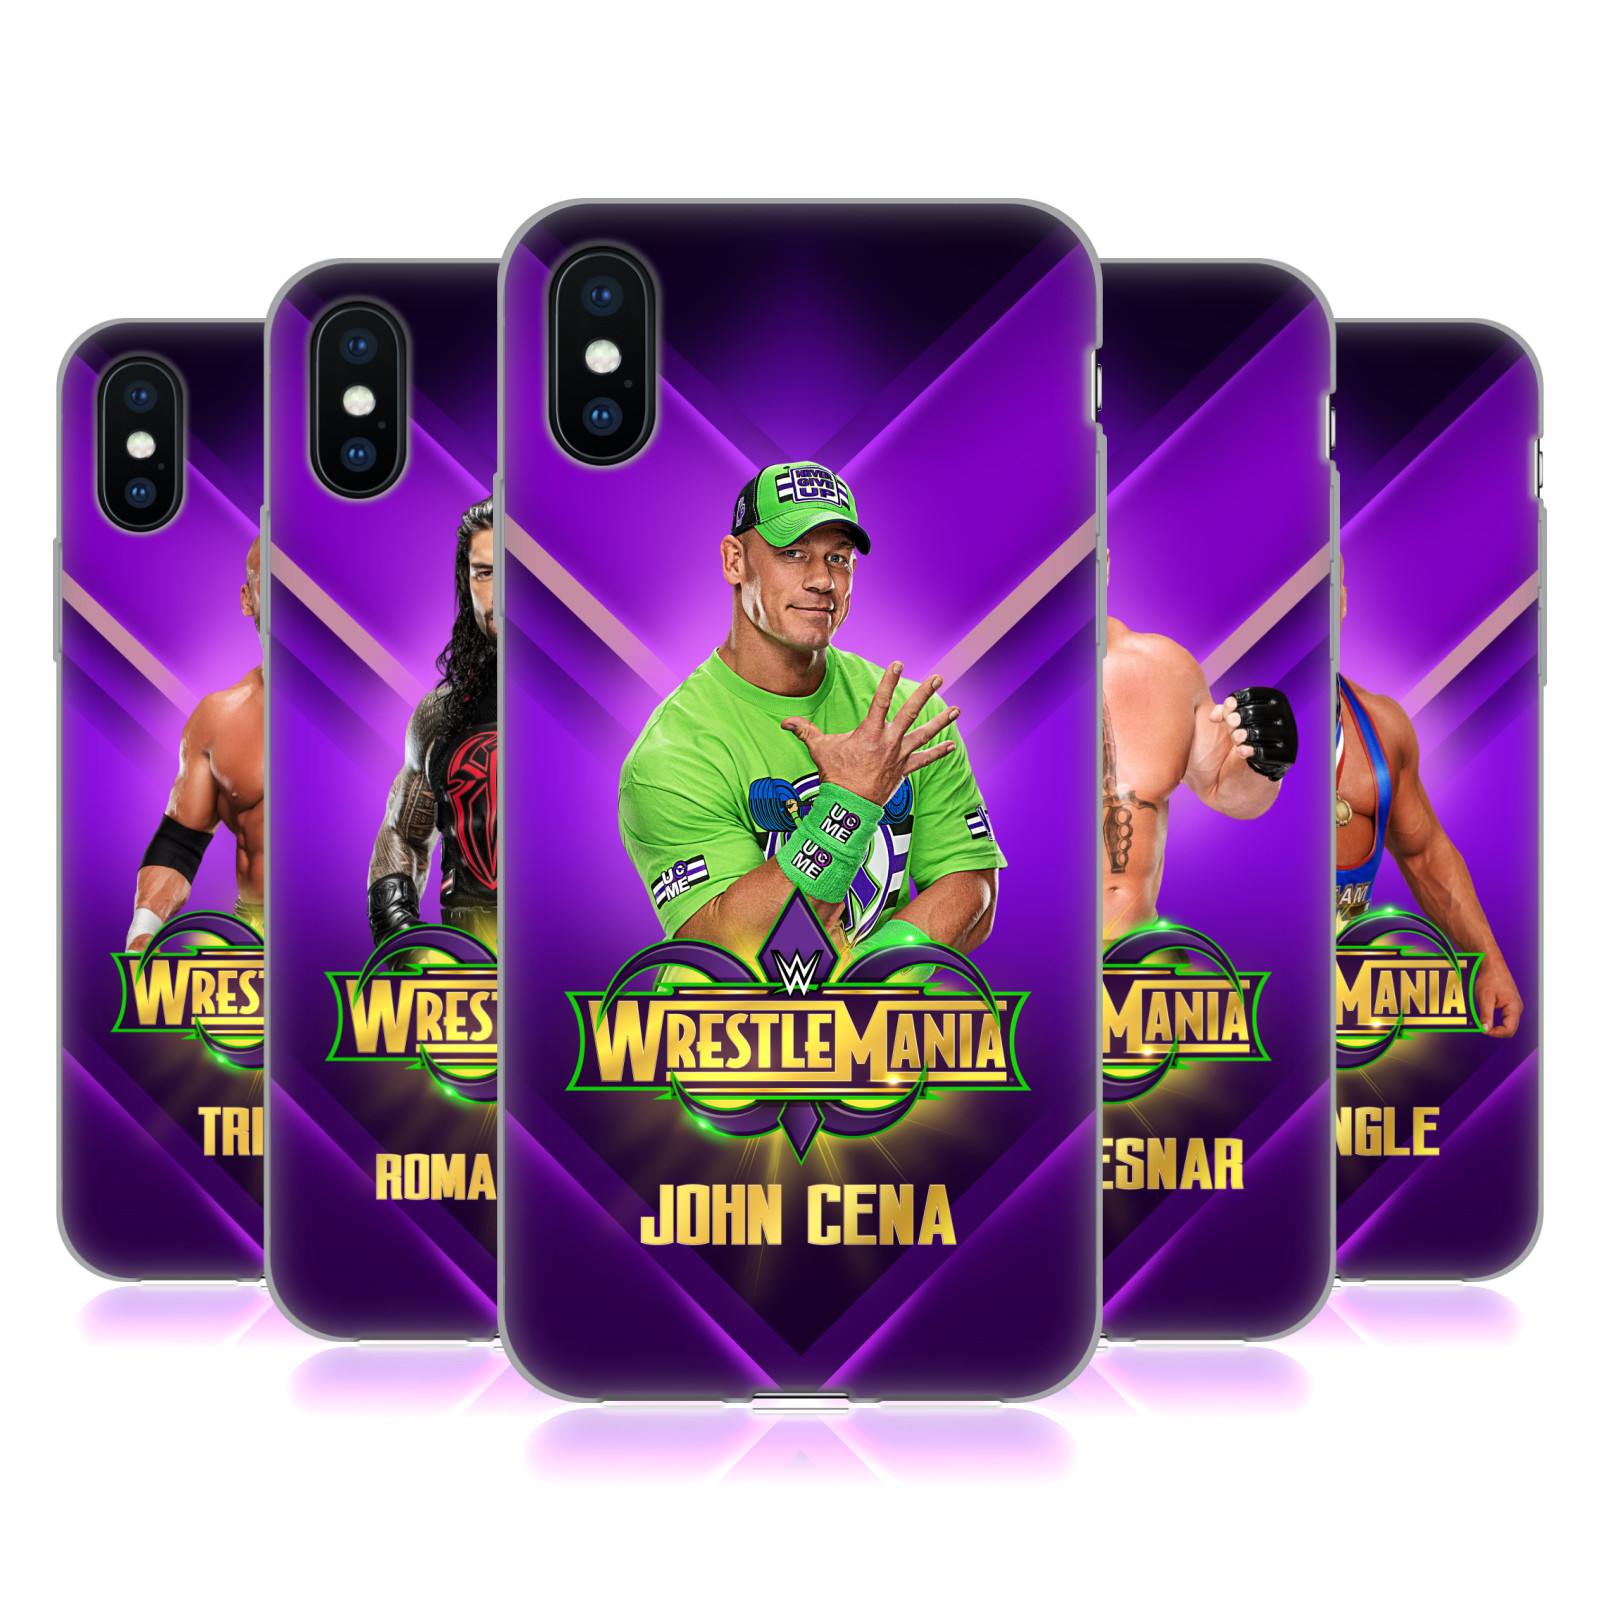 WWE <!--translate-lineup-->Wrestlemania 34 Superstars<!--translate-lineup-->